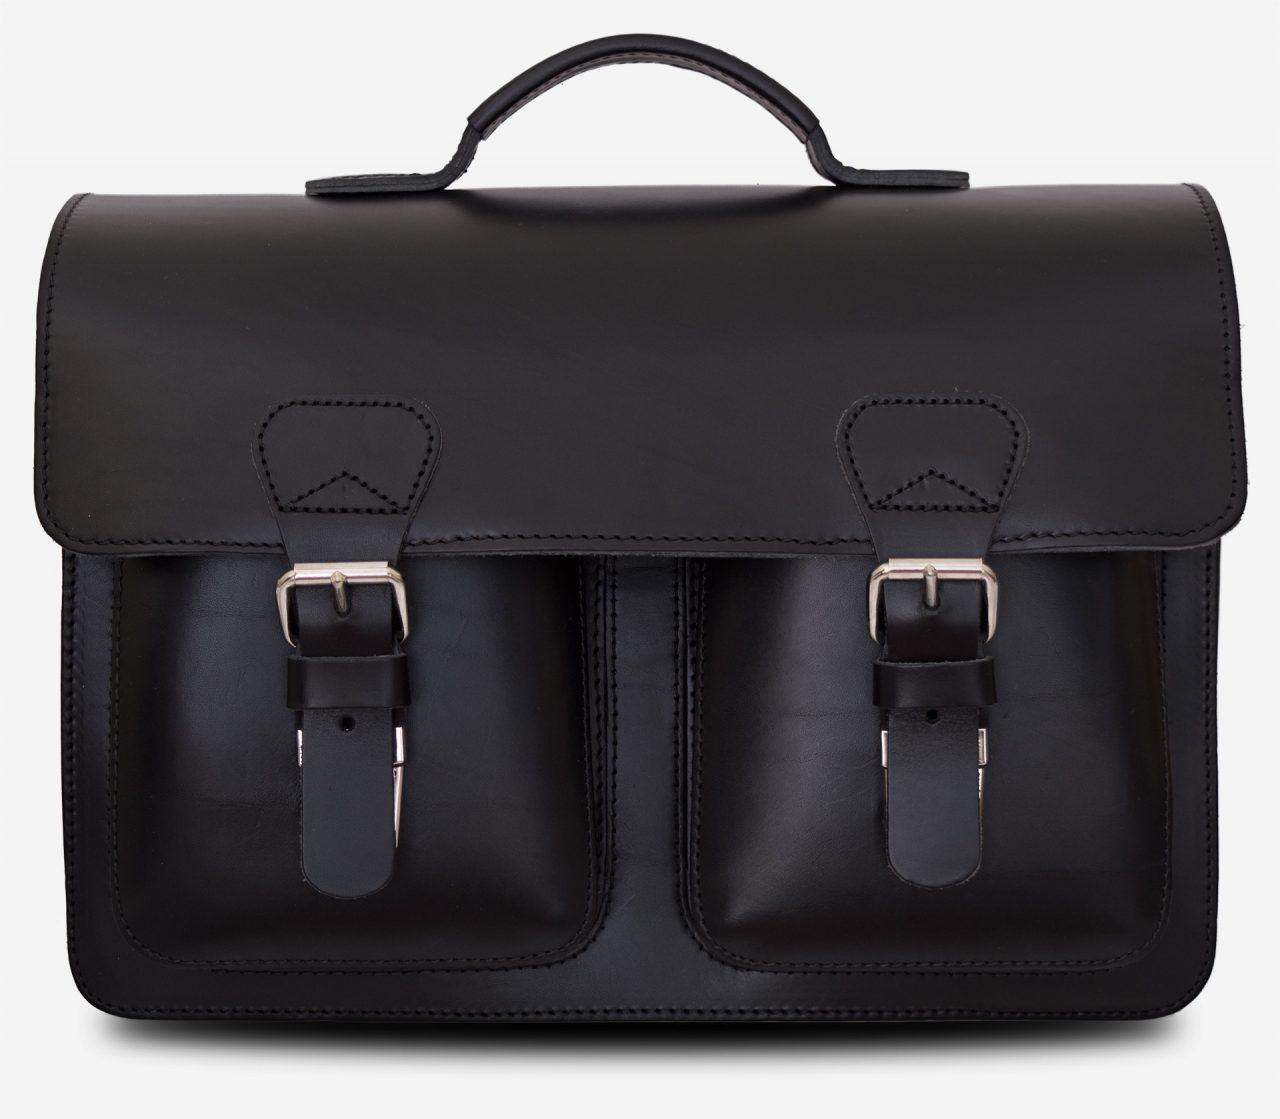 Front view black leather satchel briefcase with front pockets 112133.